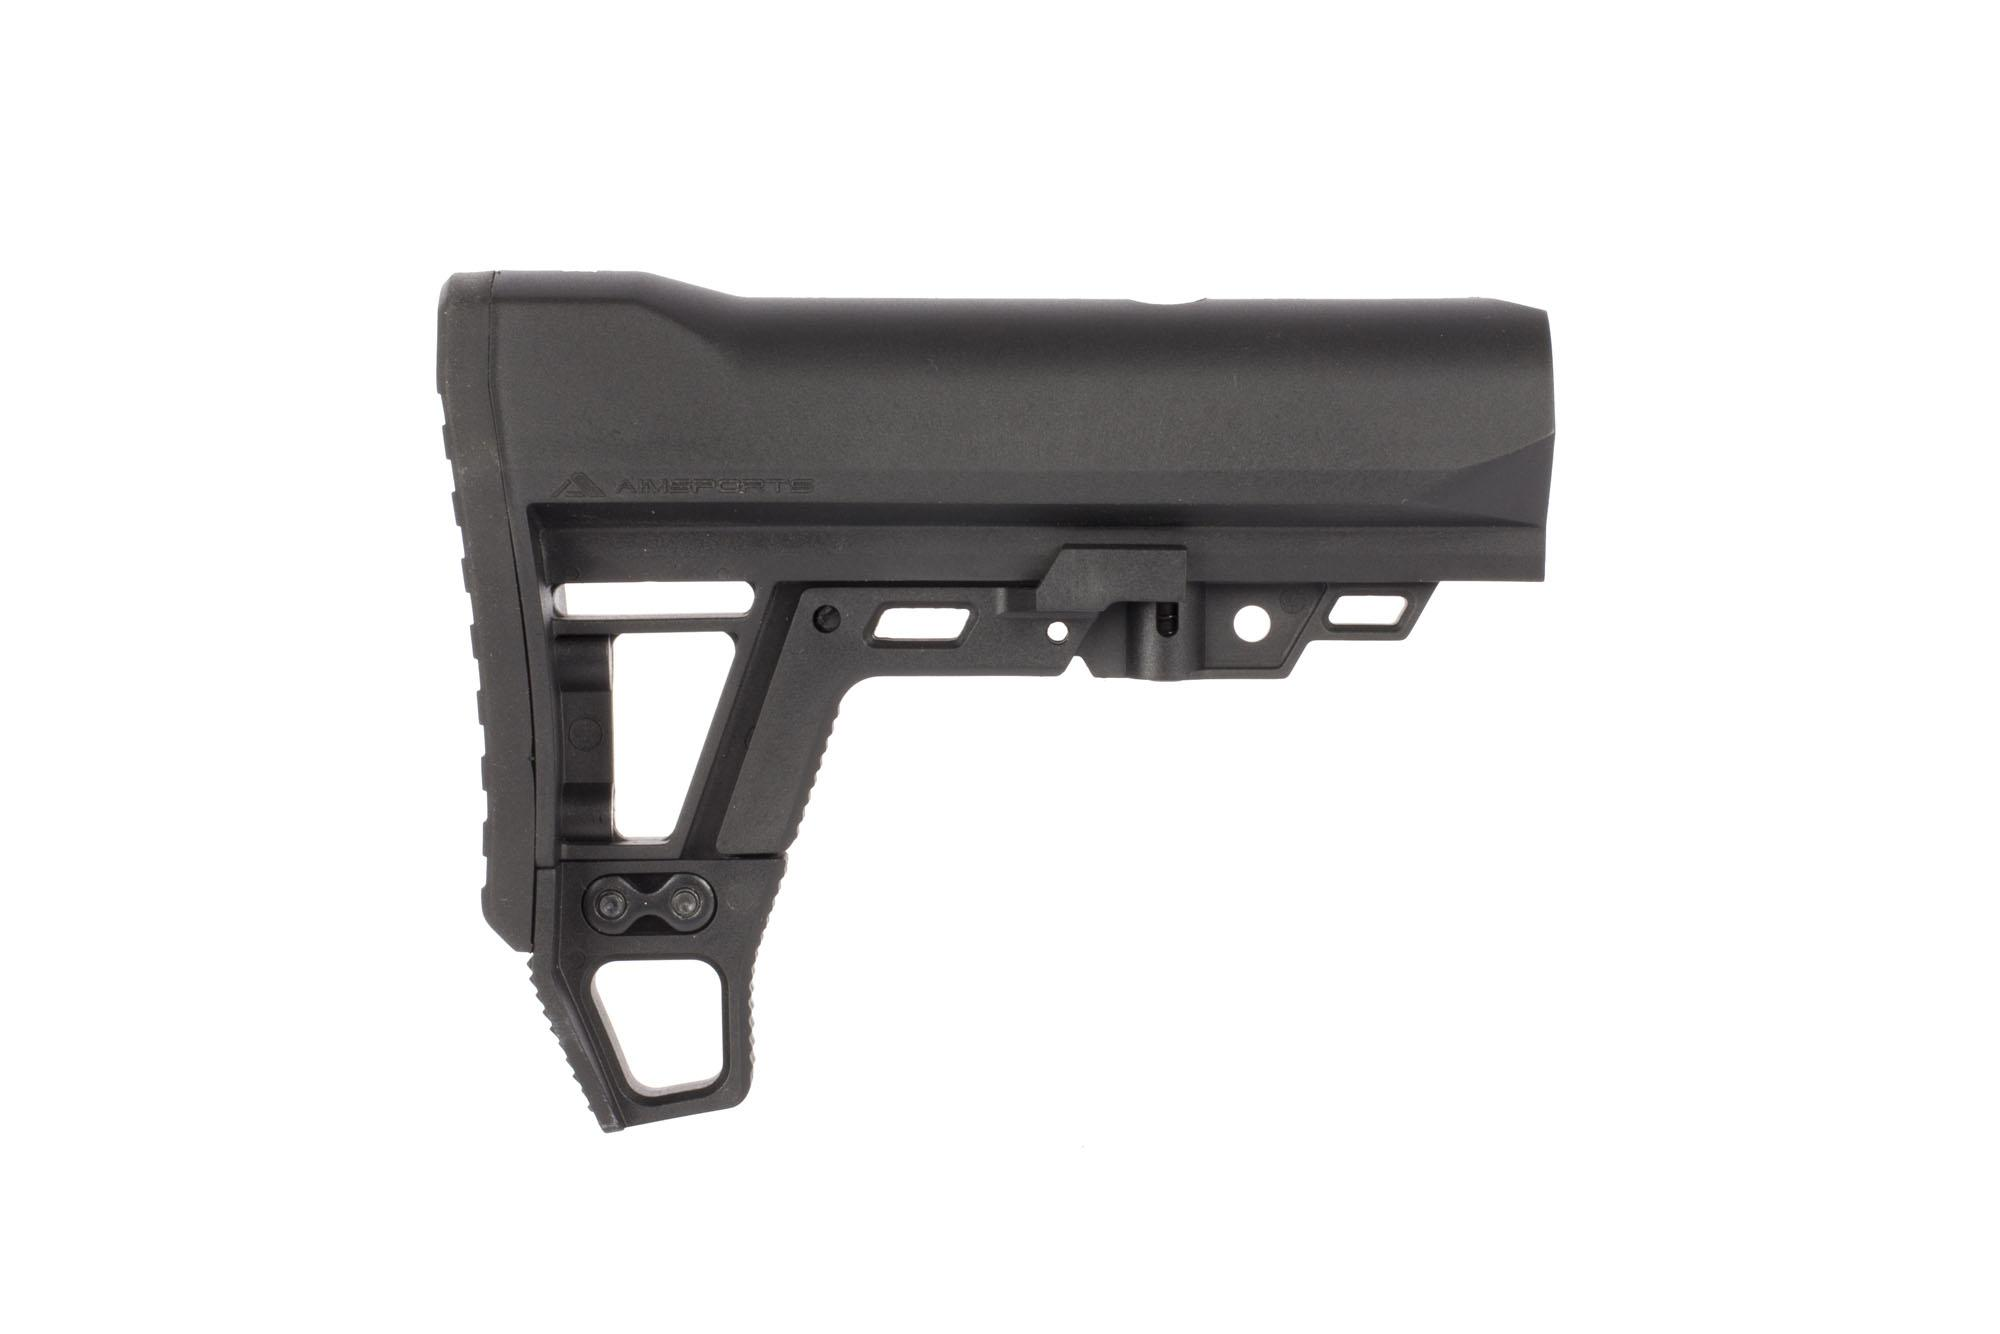 The AimSports advanced modular stock is compatible with Mil-Spec Ar-15 buffer tubes